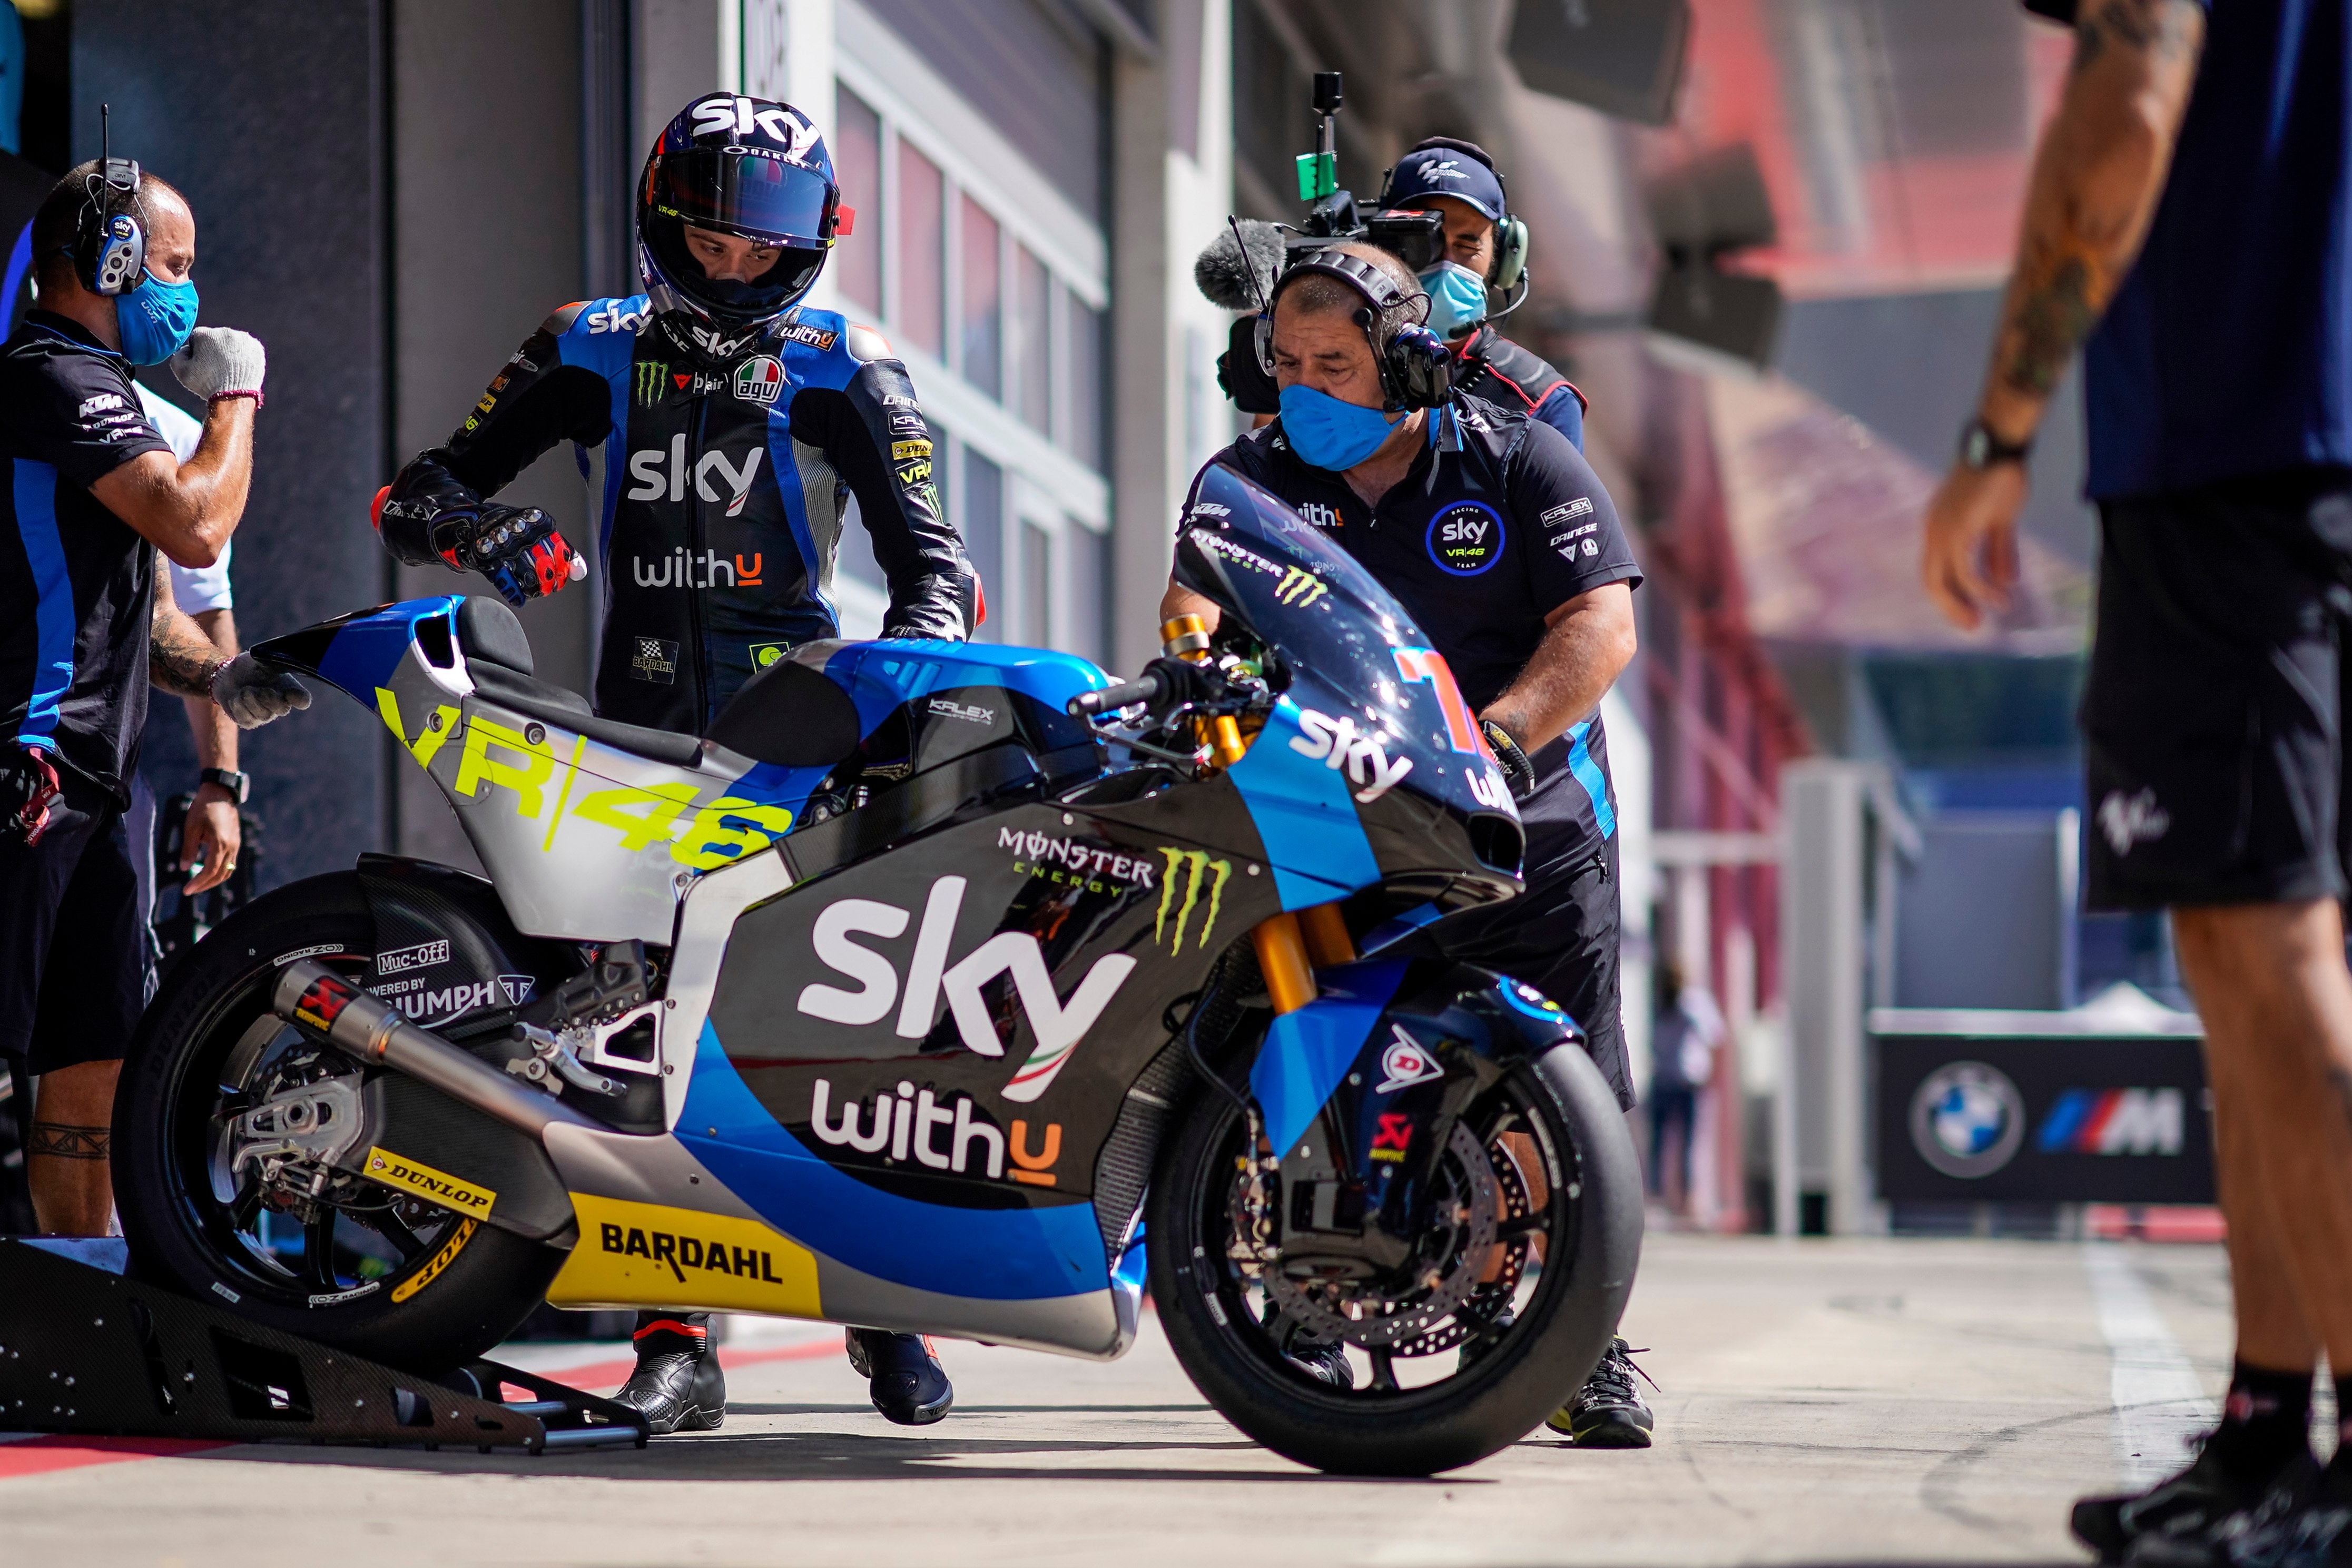 Sky Racing Team by VR46 - Lifestyle image 3